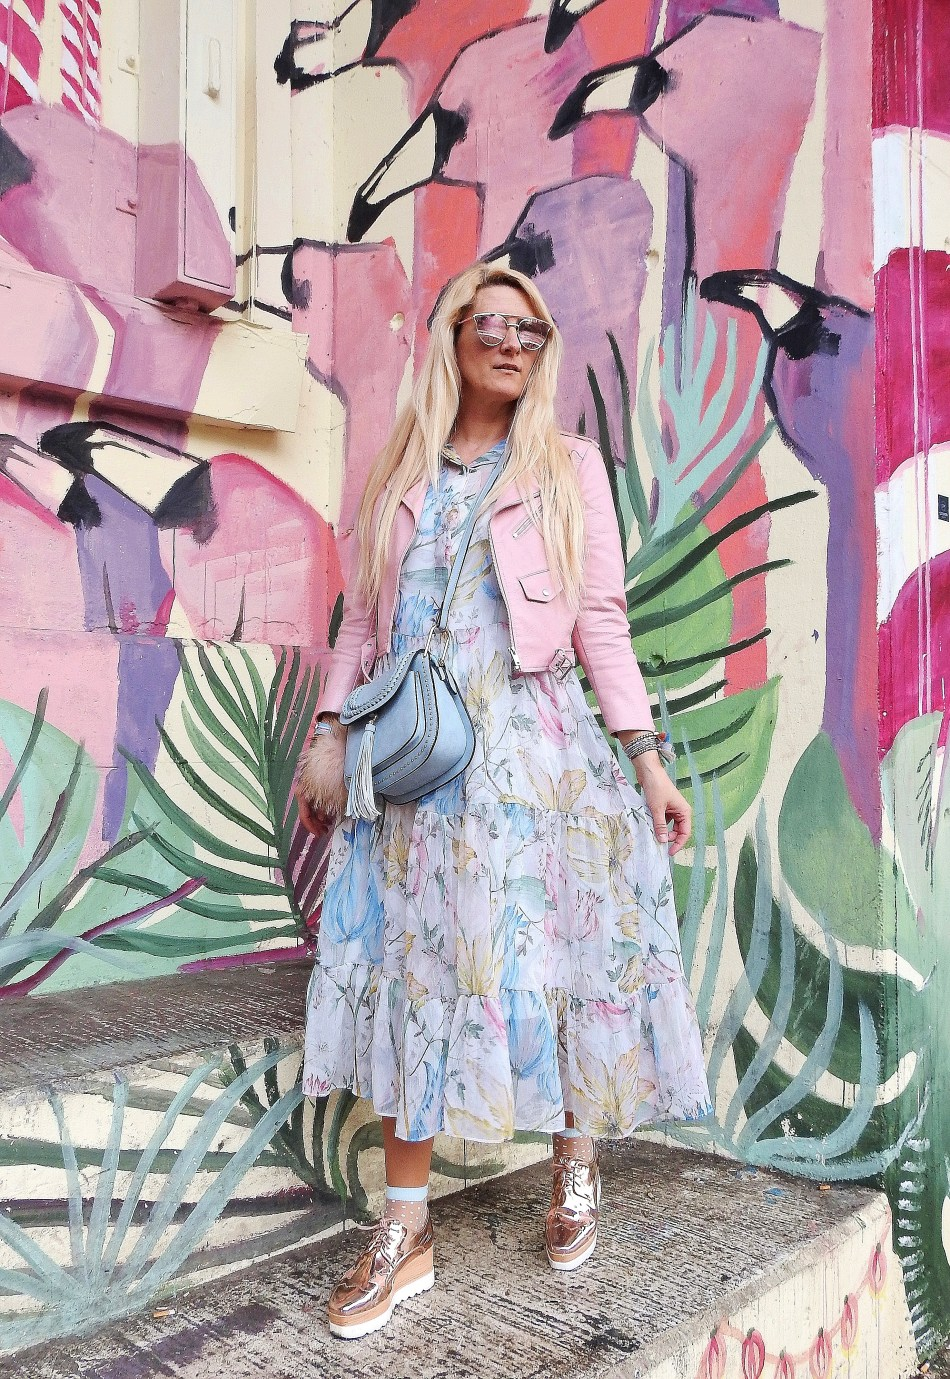 Fashionsocks-Floralprint-Maxidress-Springvibes-Springlook-Leatherjacket-pink-Daniel-Wellington-Watch-Chloe-Bag-carrieslifestyle-Tamara-Prutsch-H&M-Stella-Mccartney-Platforms